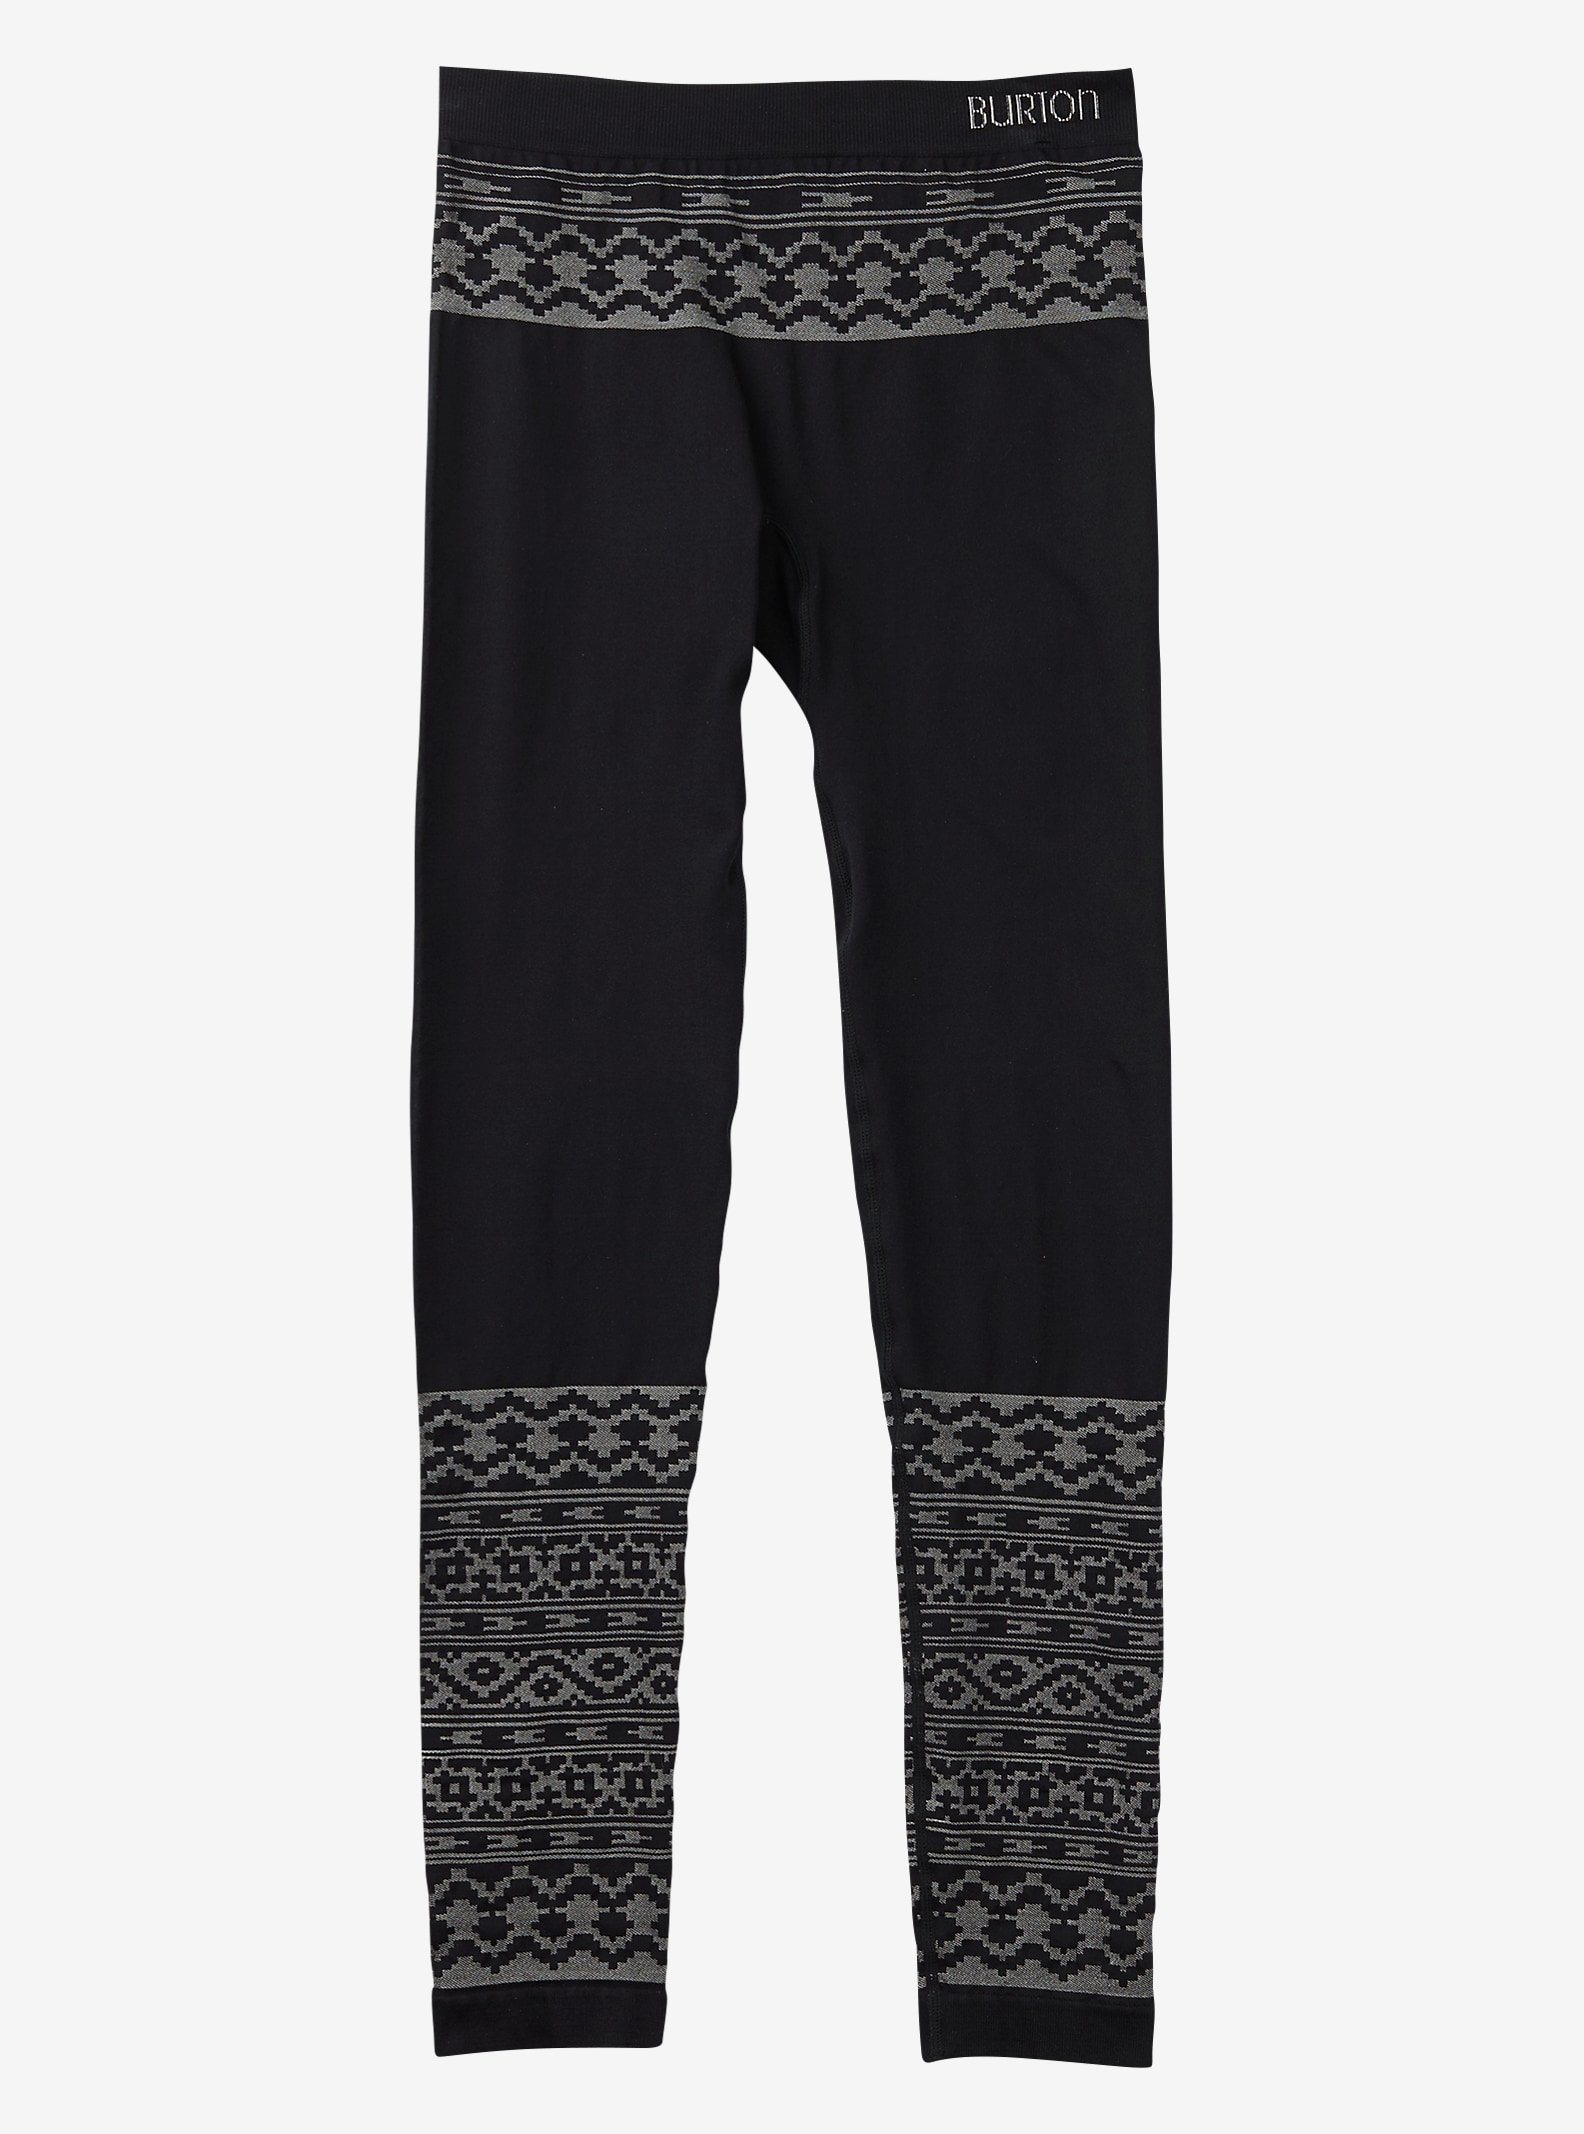 Burton Women's Active Seamless Tight shown in Kilim